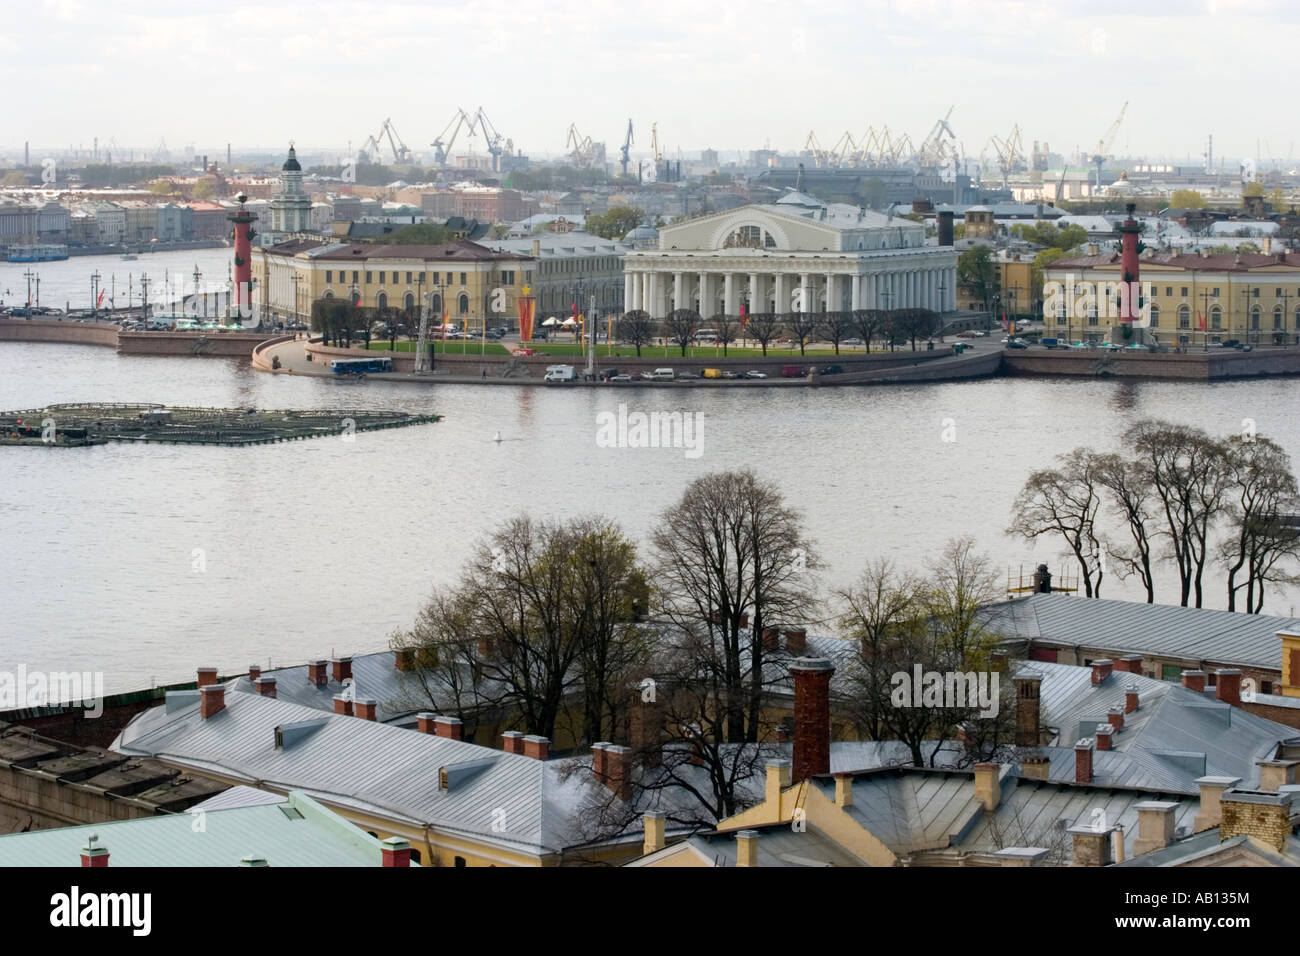 Old Saint Petersburg Stock Exchange and Rostral Columns. St Petersburg Stock Photo